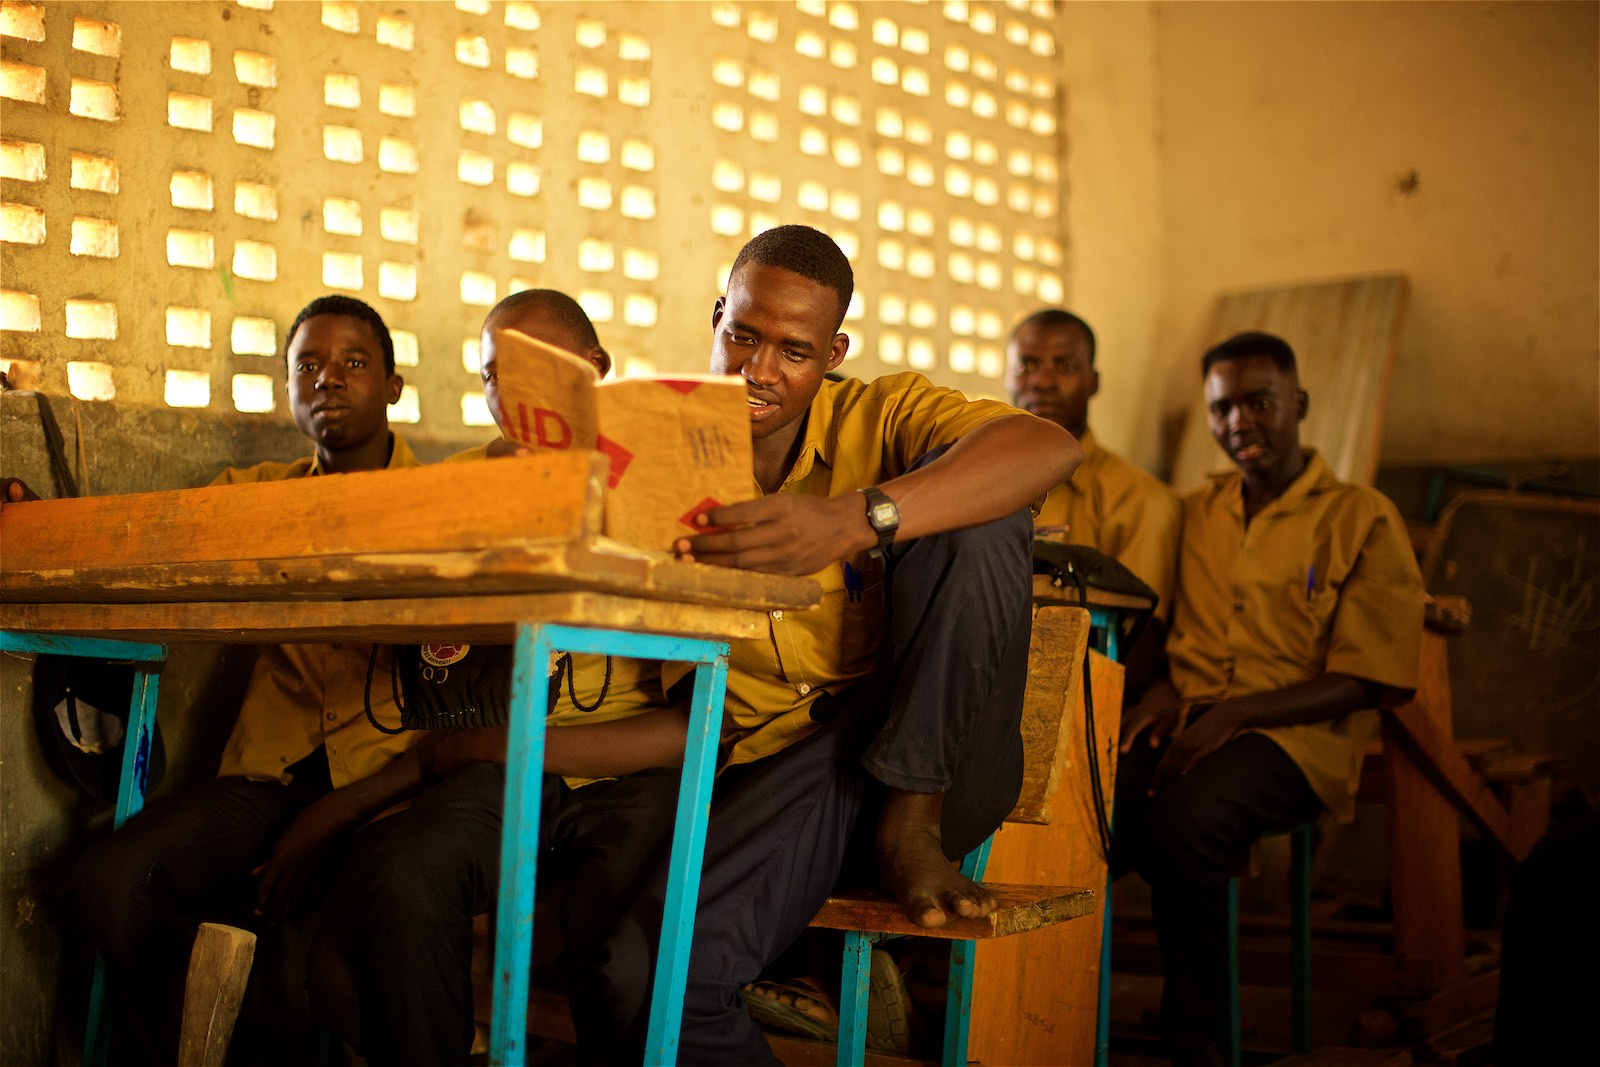 denis-bosnic-chad-school-jrs-jesuit-refugee-service-students-education-mercy-in-motion-20.jpg